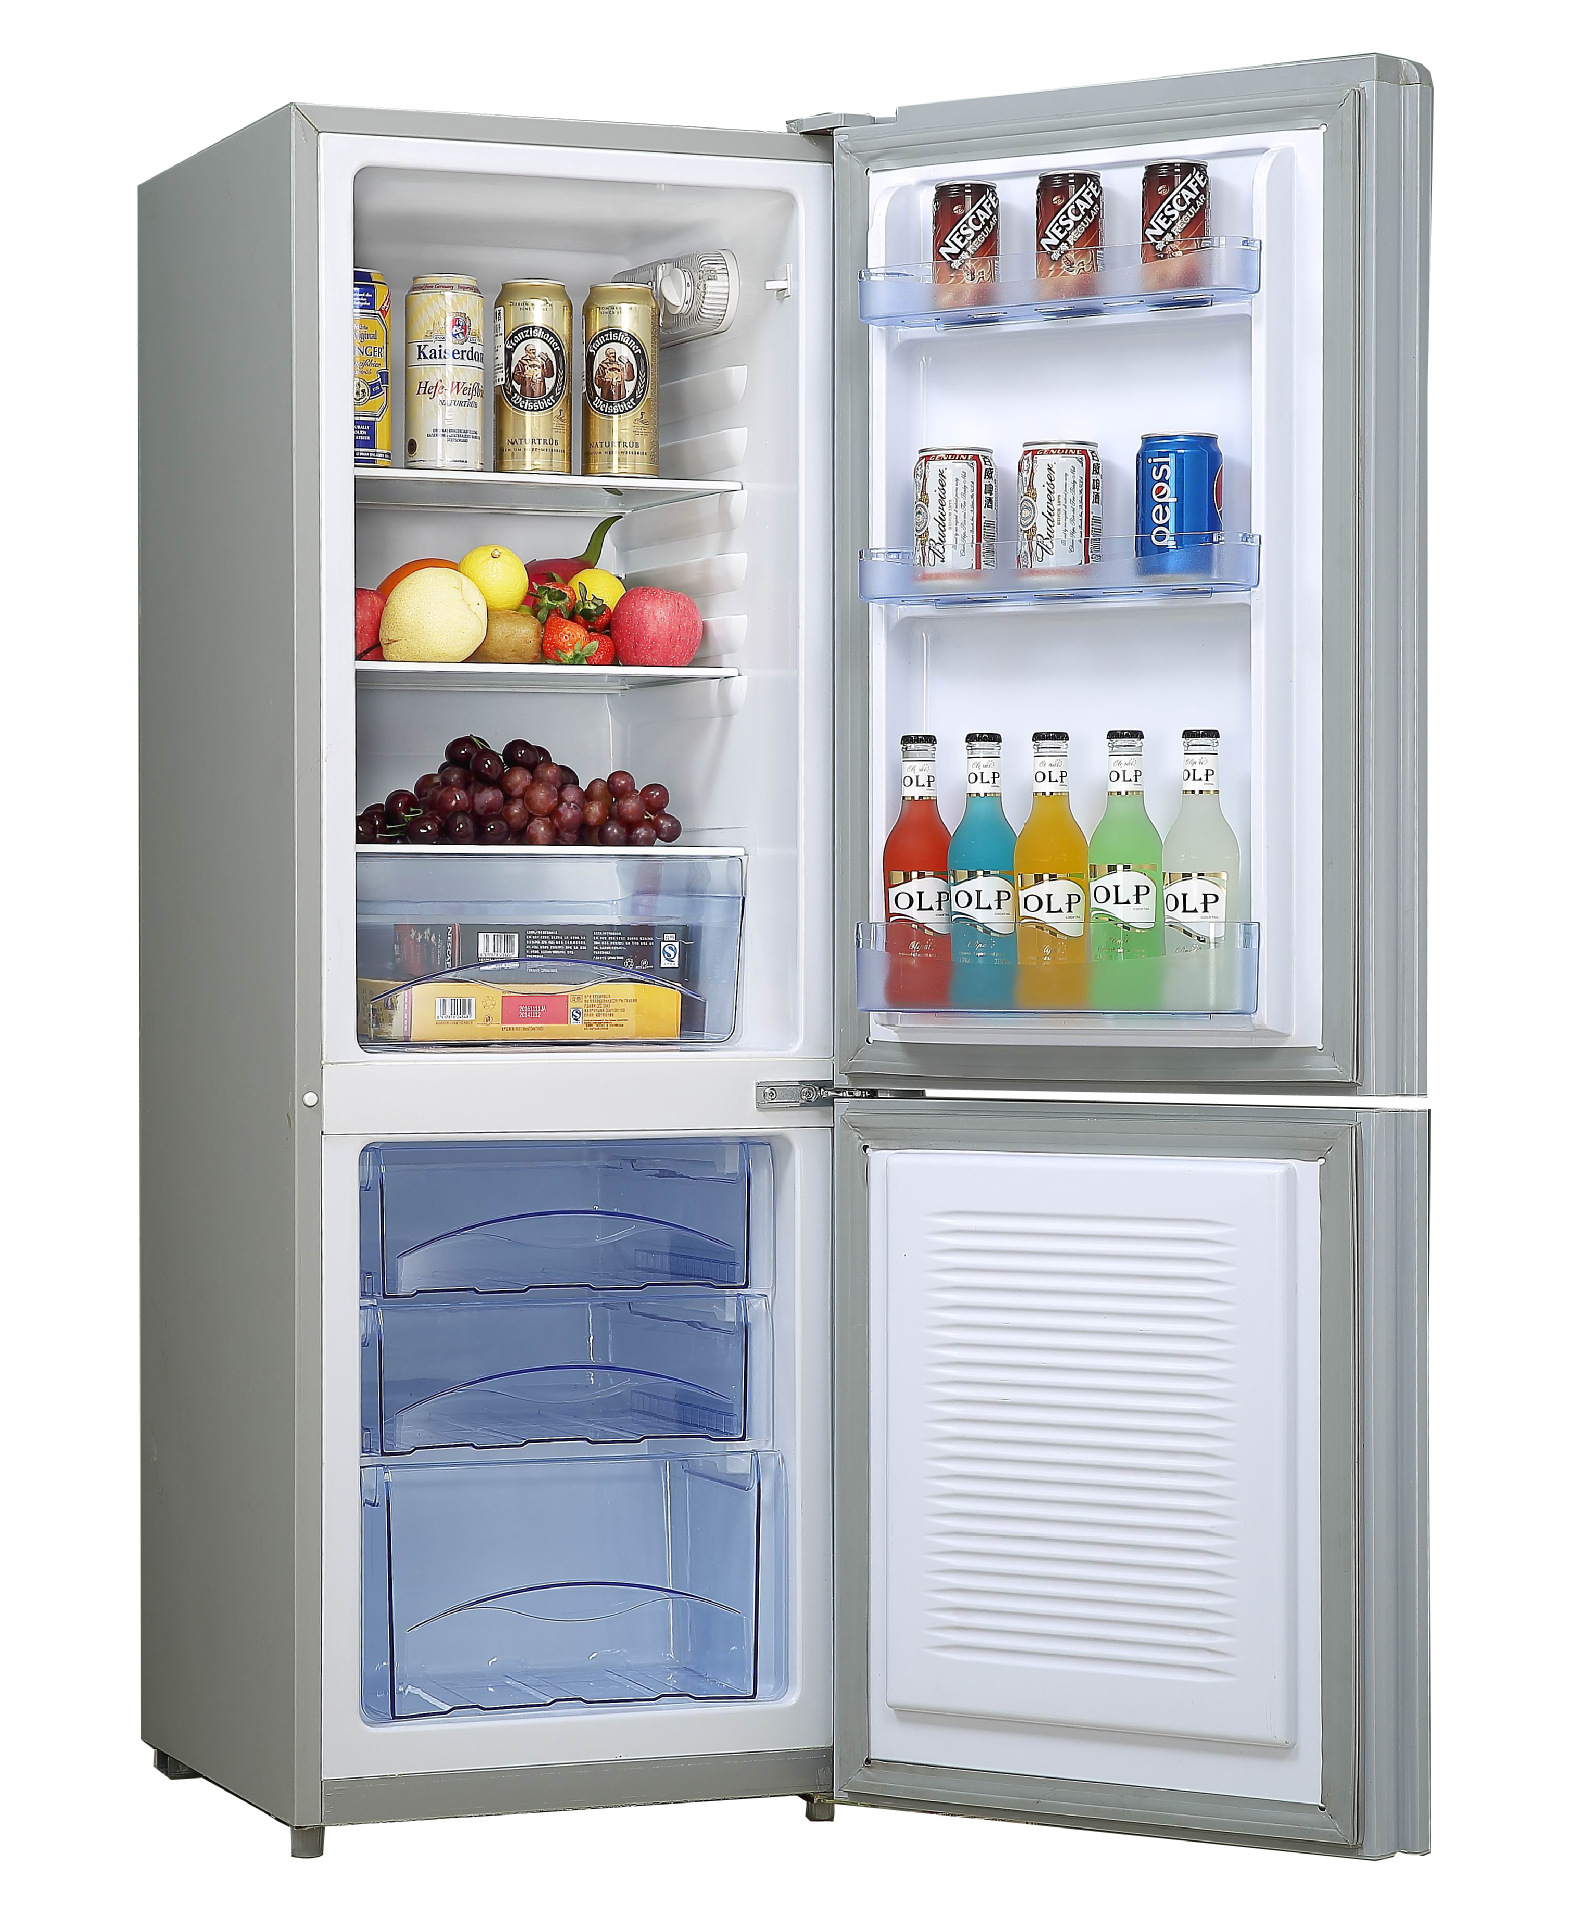 153L DC12V~24V fridge/freezer